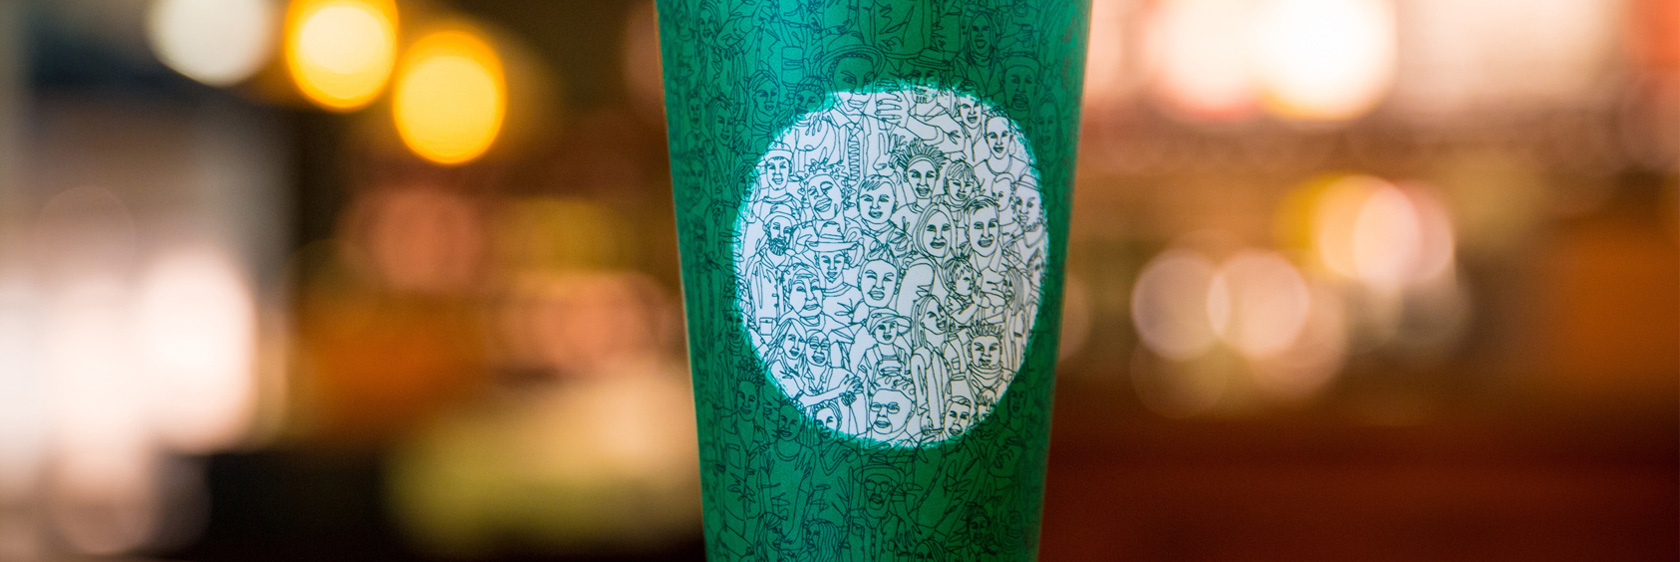 ShogoOta_Seattle_WA_Graphic_Design_GreenCup_Starbucks